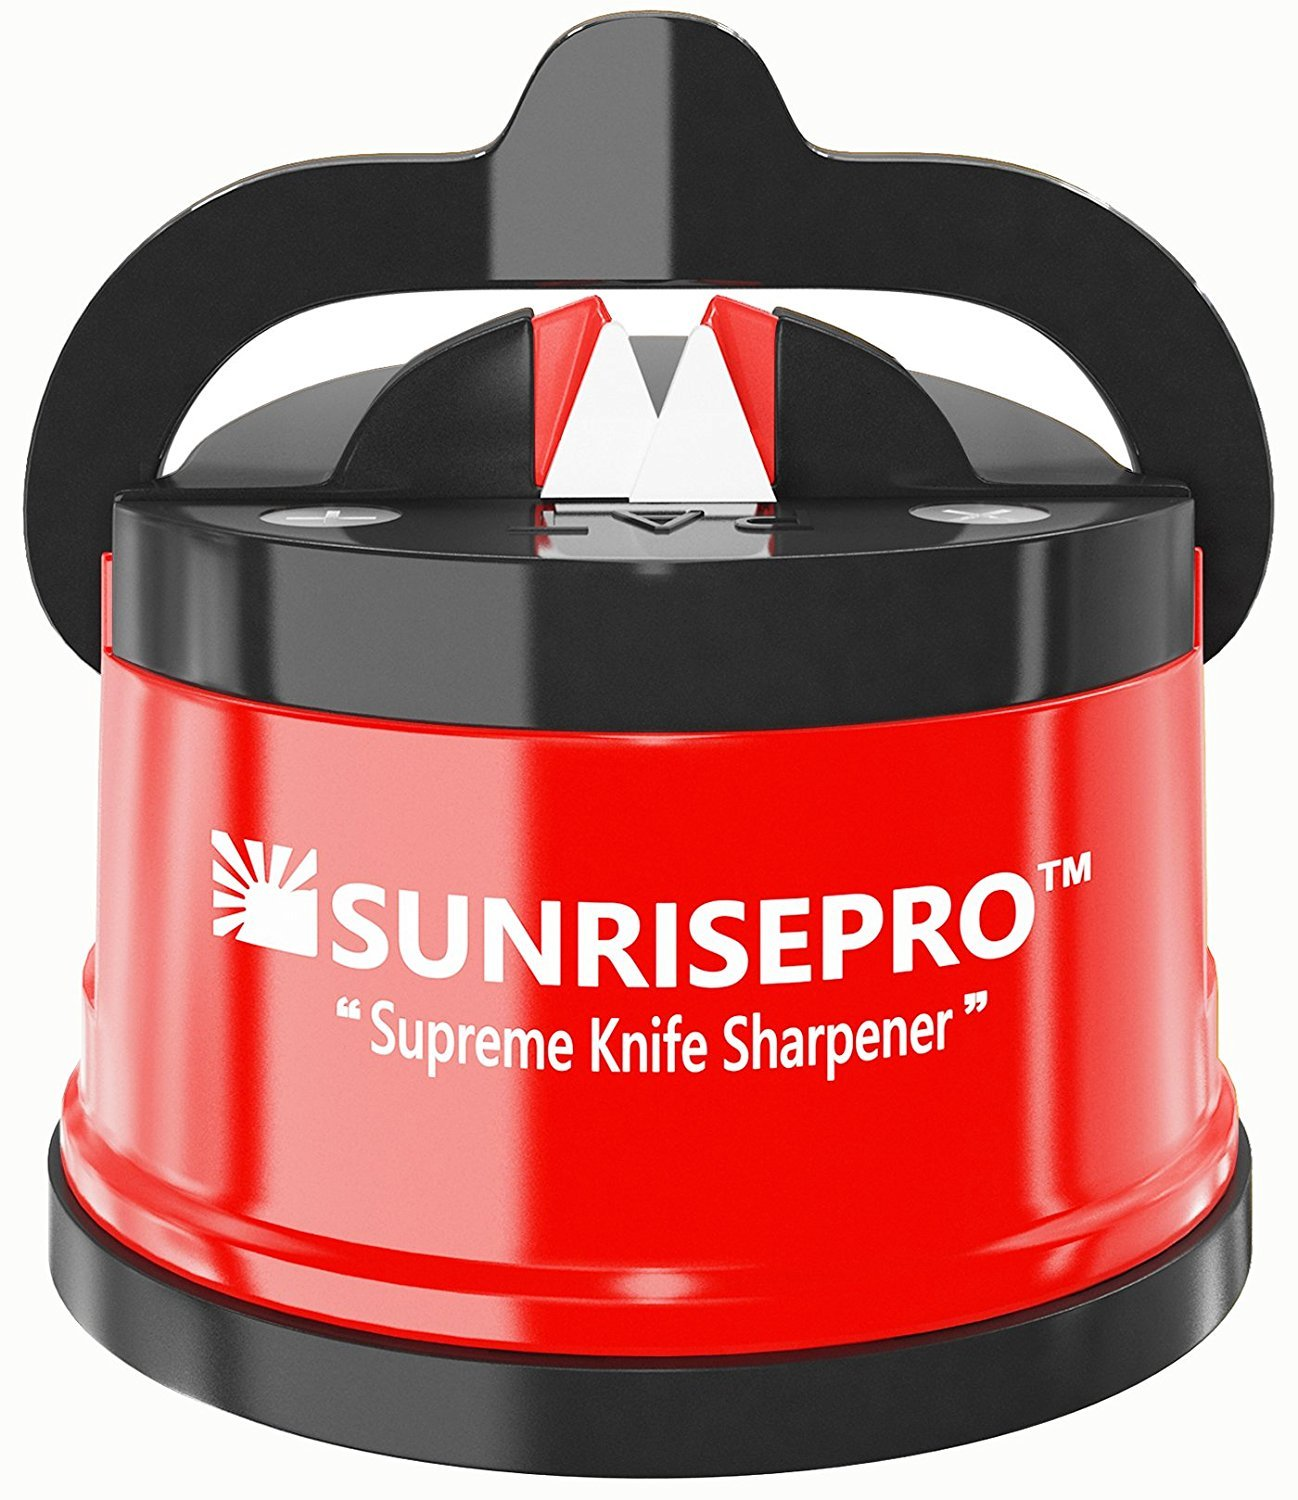 SunrisePro Supreme Knife Sharpener for all Blade Types | Razor Sharp Precision & Perfect Calibration | Easy & Safe to Use | Ideal for Kitchen, Workshop, Craft Rooms, Camping & Hiking by SunrisePro